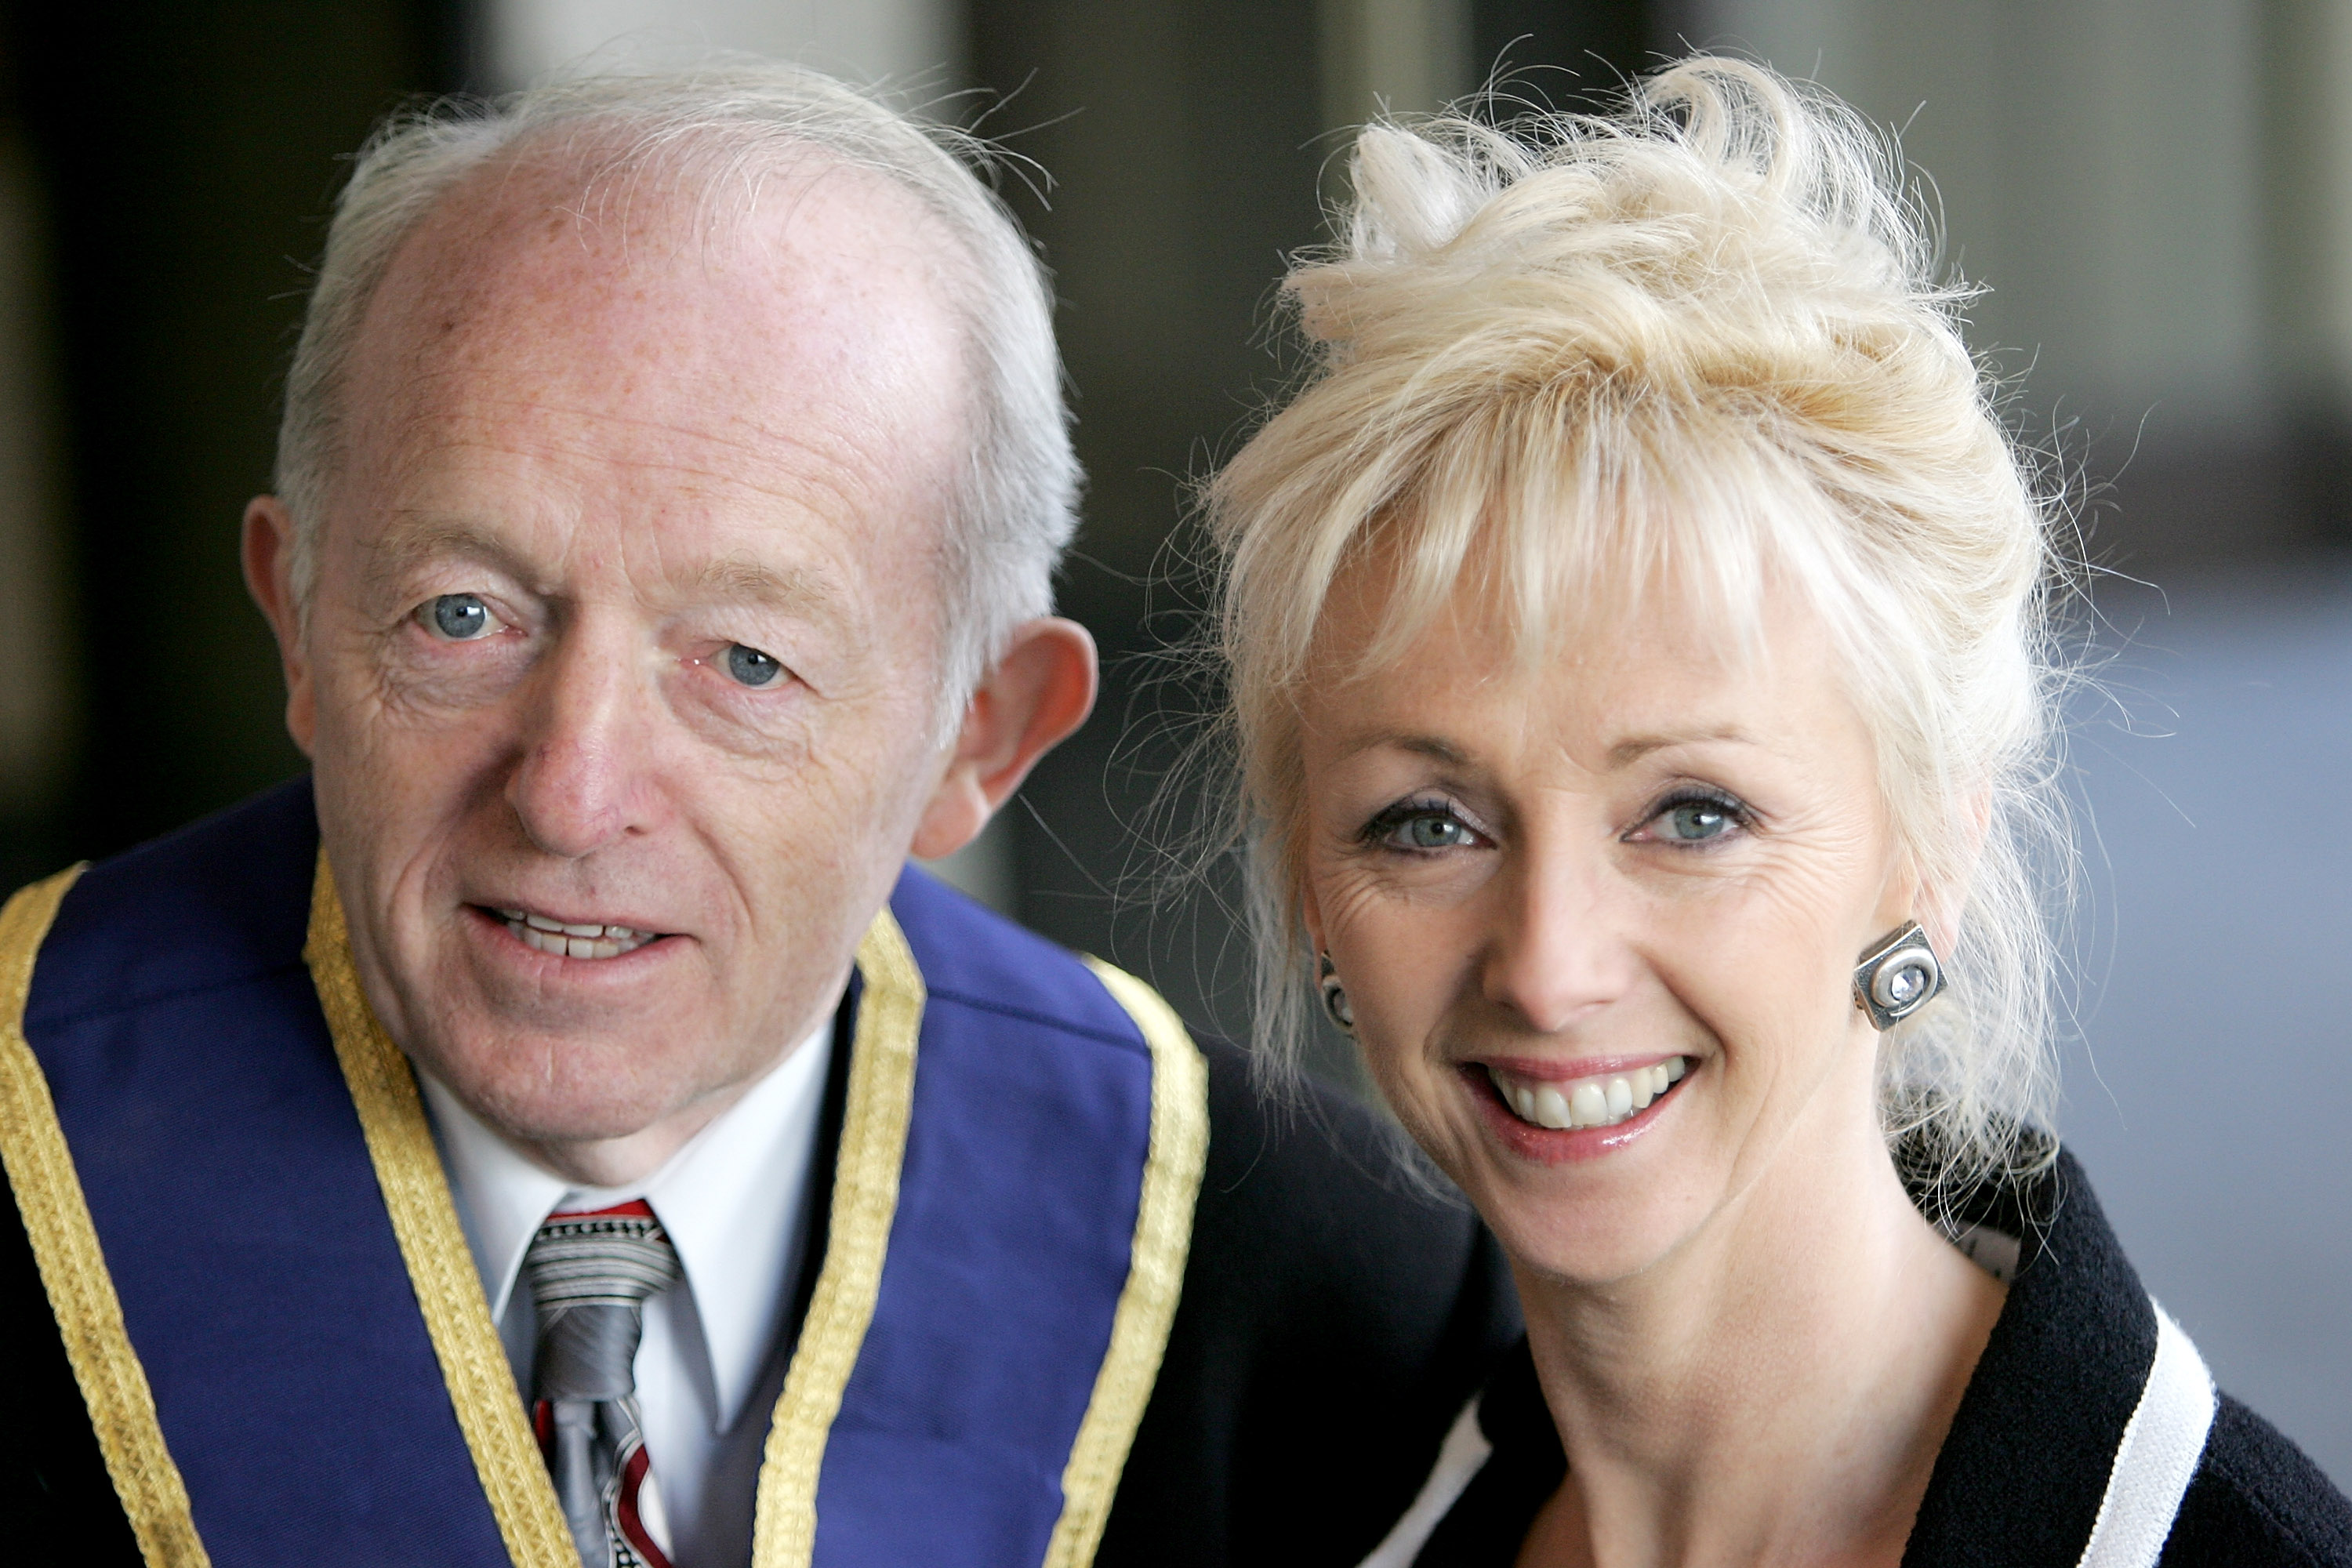 """LONDON - FEBRUARY 18: Paul Daniels and Debbie McGee arrives at the """"Norman At Ninety"""" Tribute Luncheon at the Royal Lancaster Hotel on February 18, 2005 in London. Members of showbiz fraternity and charity The Grand Order Of Water Rats and other celebrity friends help celebrate Wisdom's 90 birthday, which was February 4. (Photo by MJ Kim/Getty Images)"""